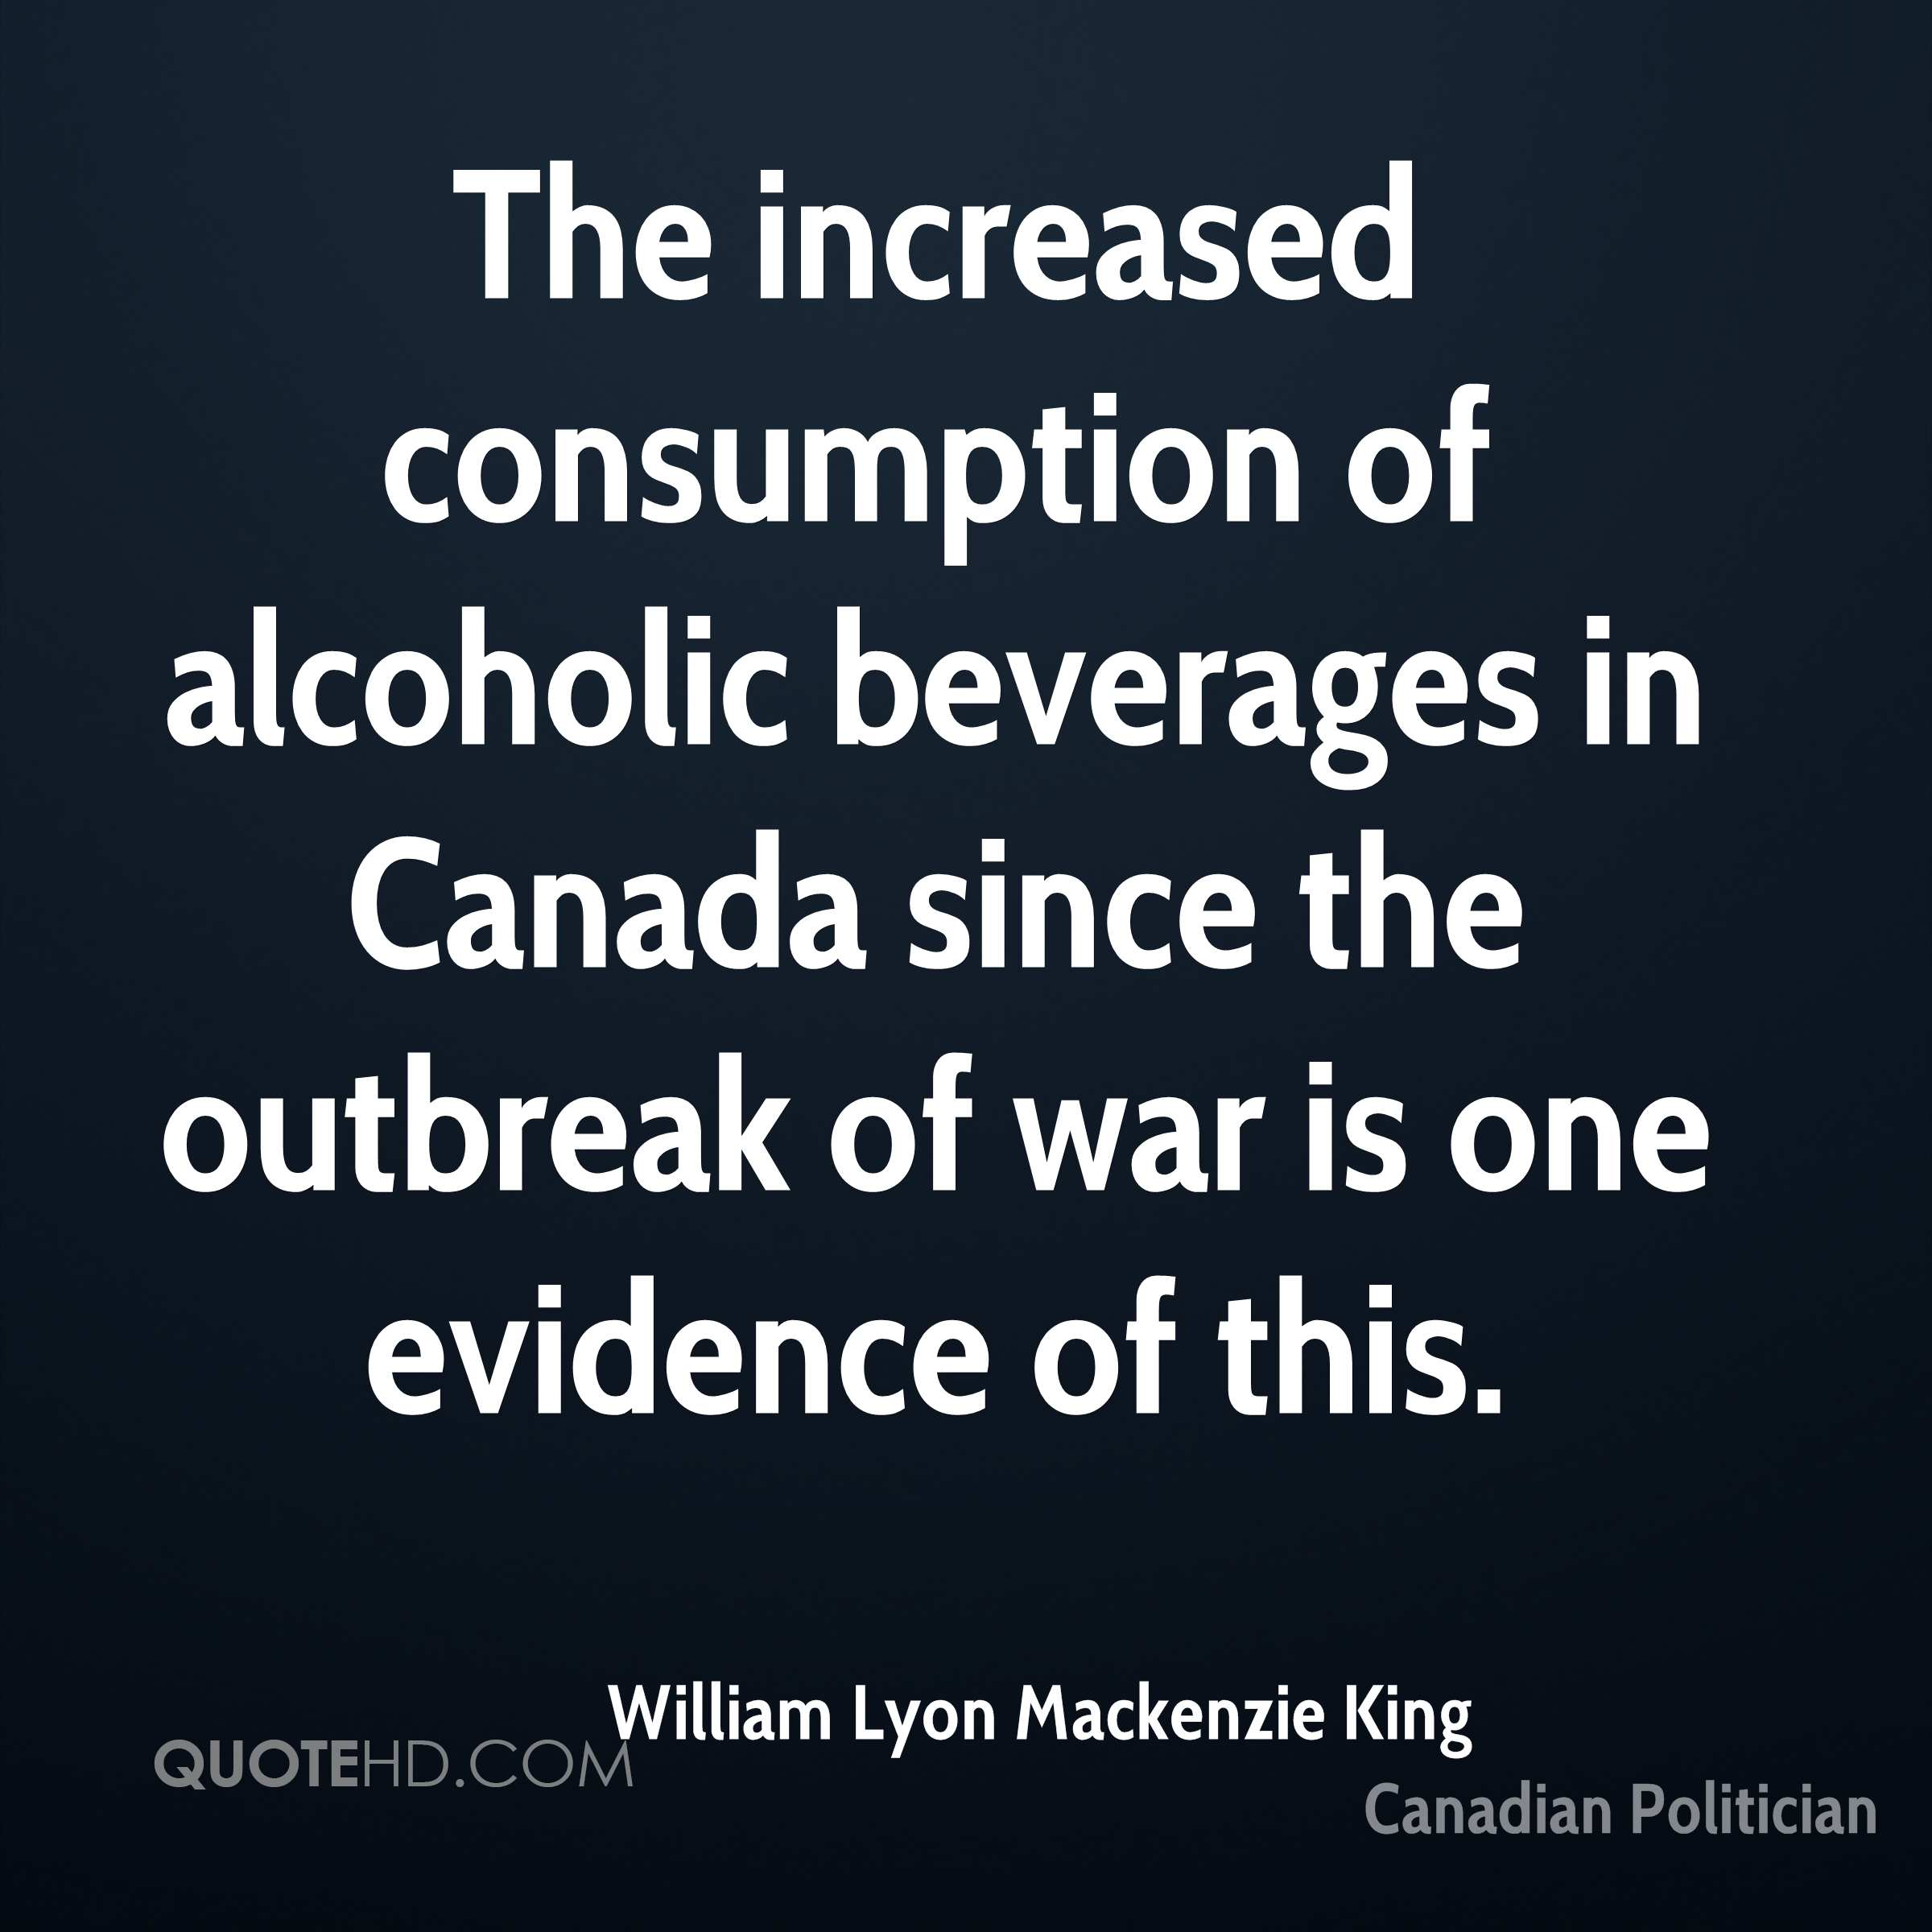 The increased consumption of alcoholic beverages in Canada since the outbreak of war is one evidence of this.